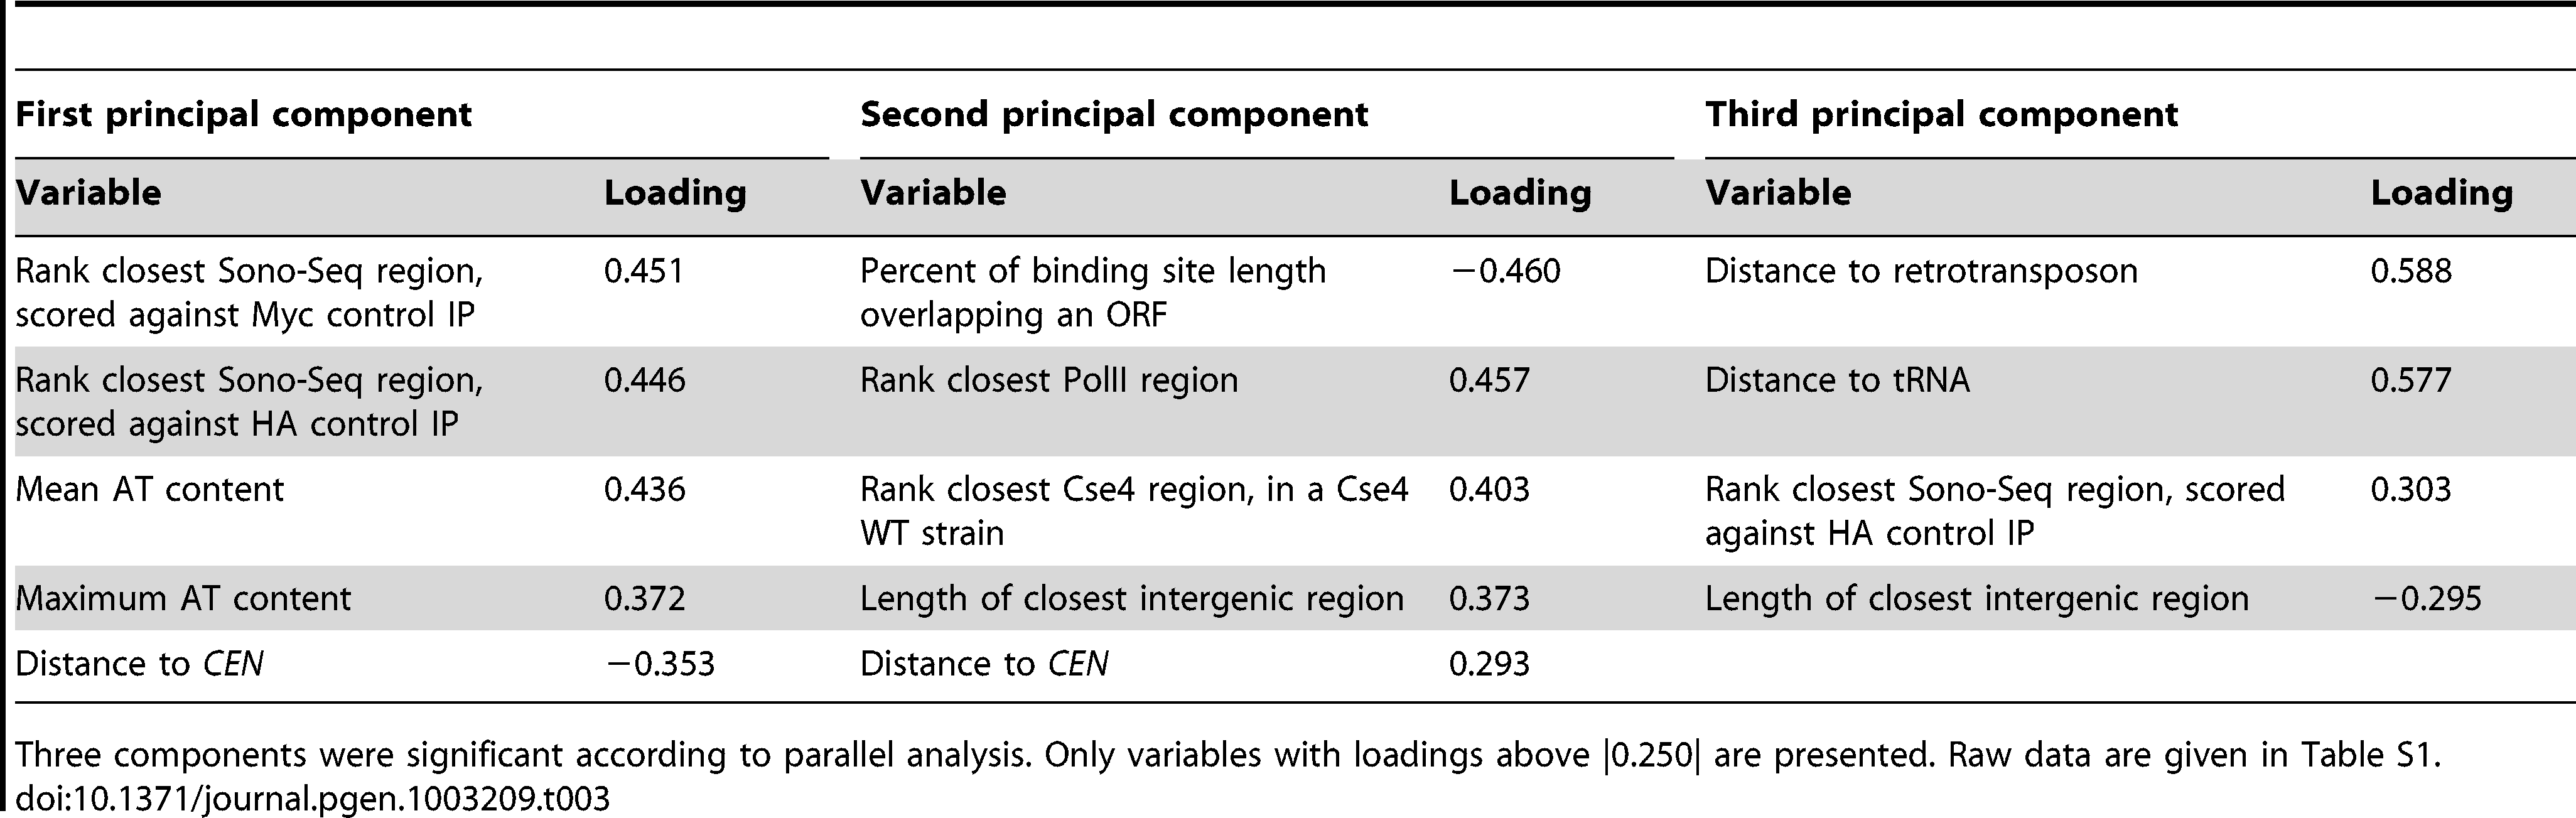 Results from principal component analysis of 23 <i>CLR</i>s.